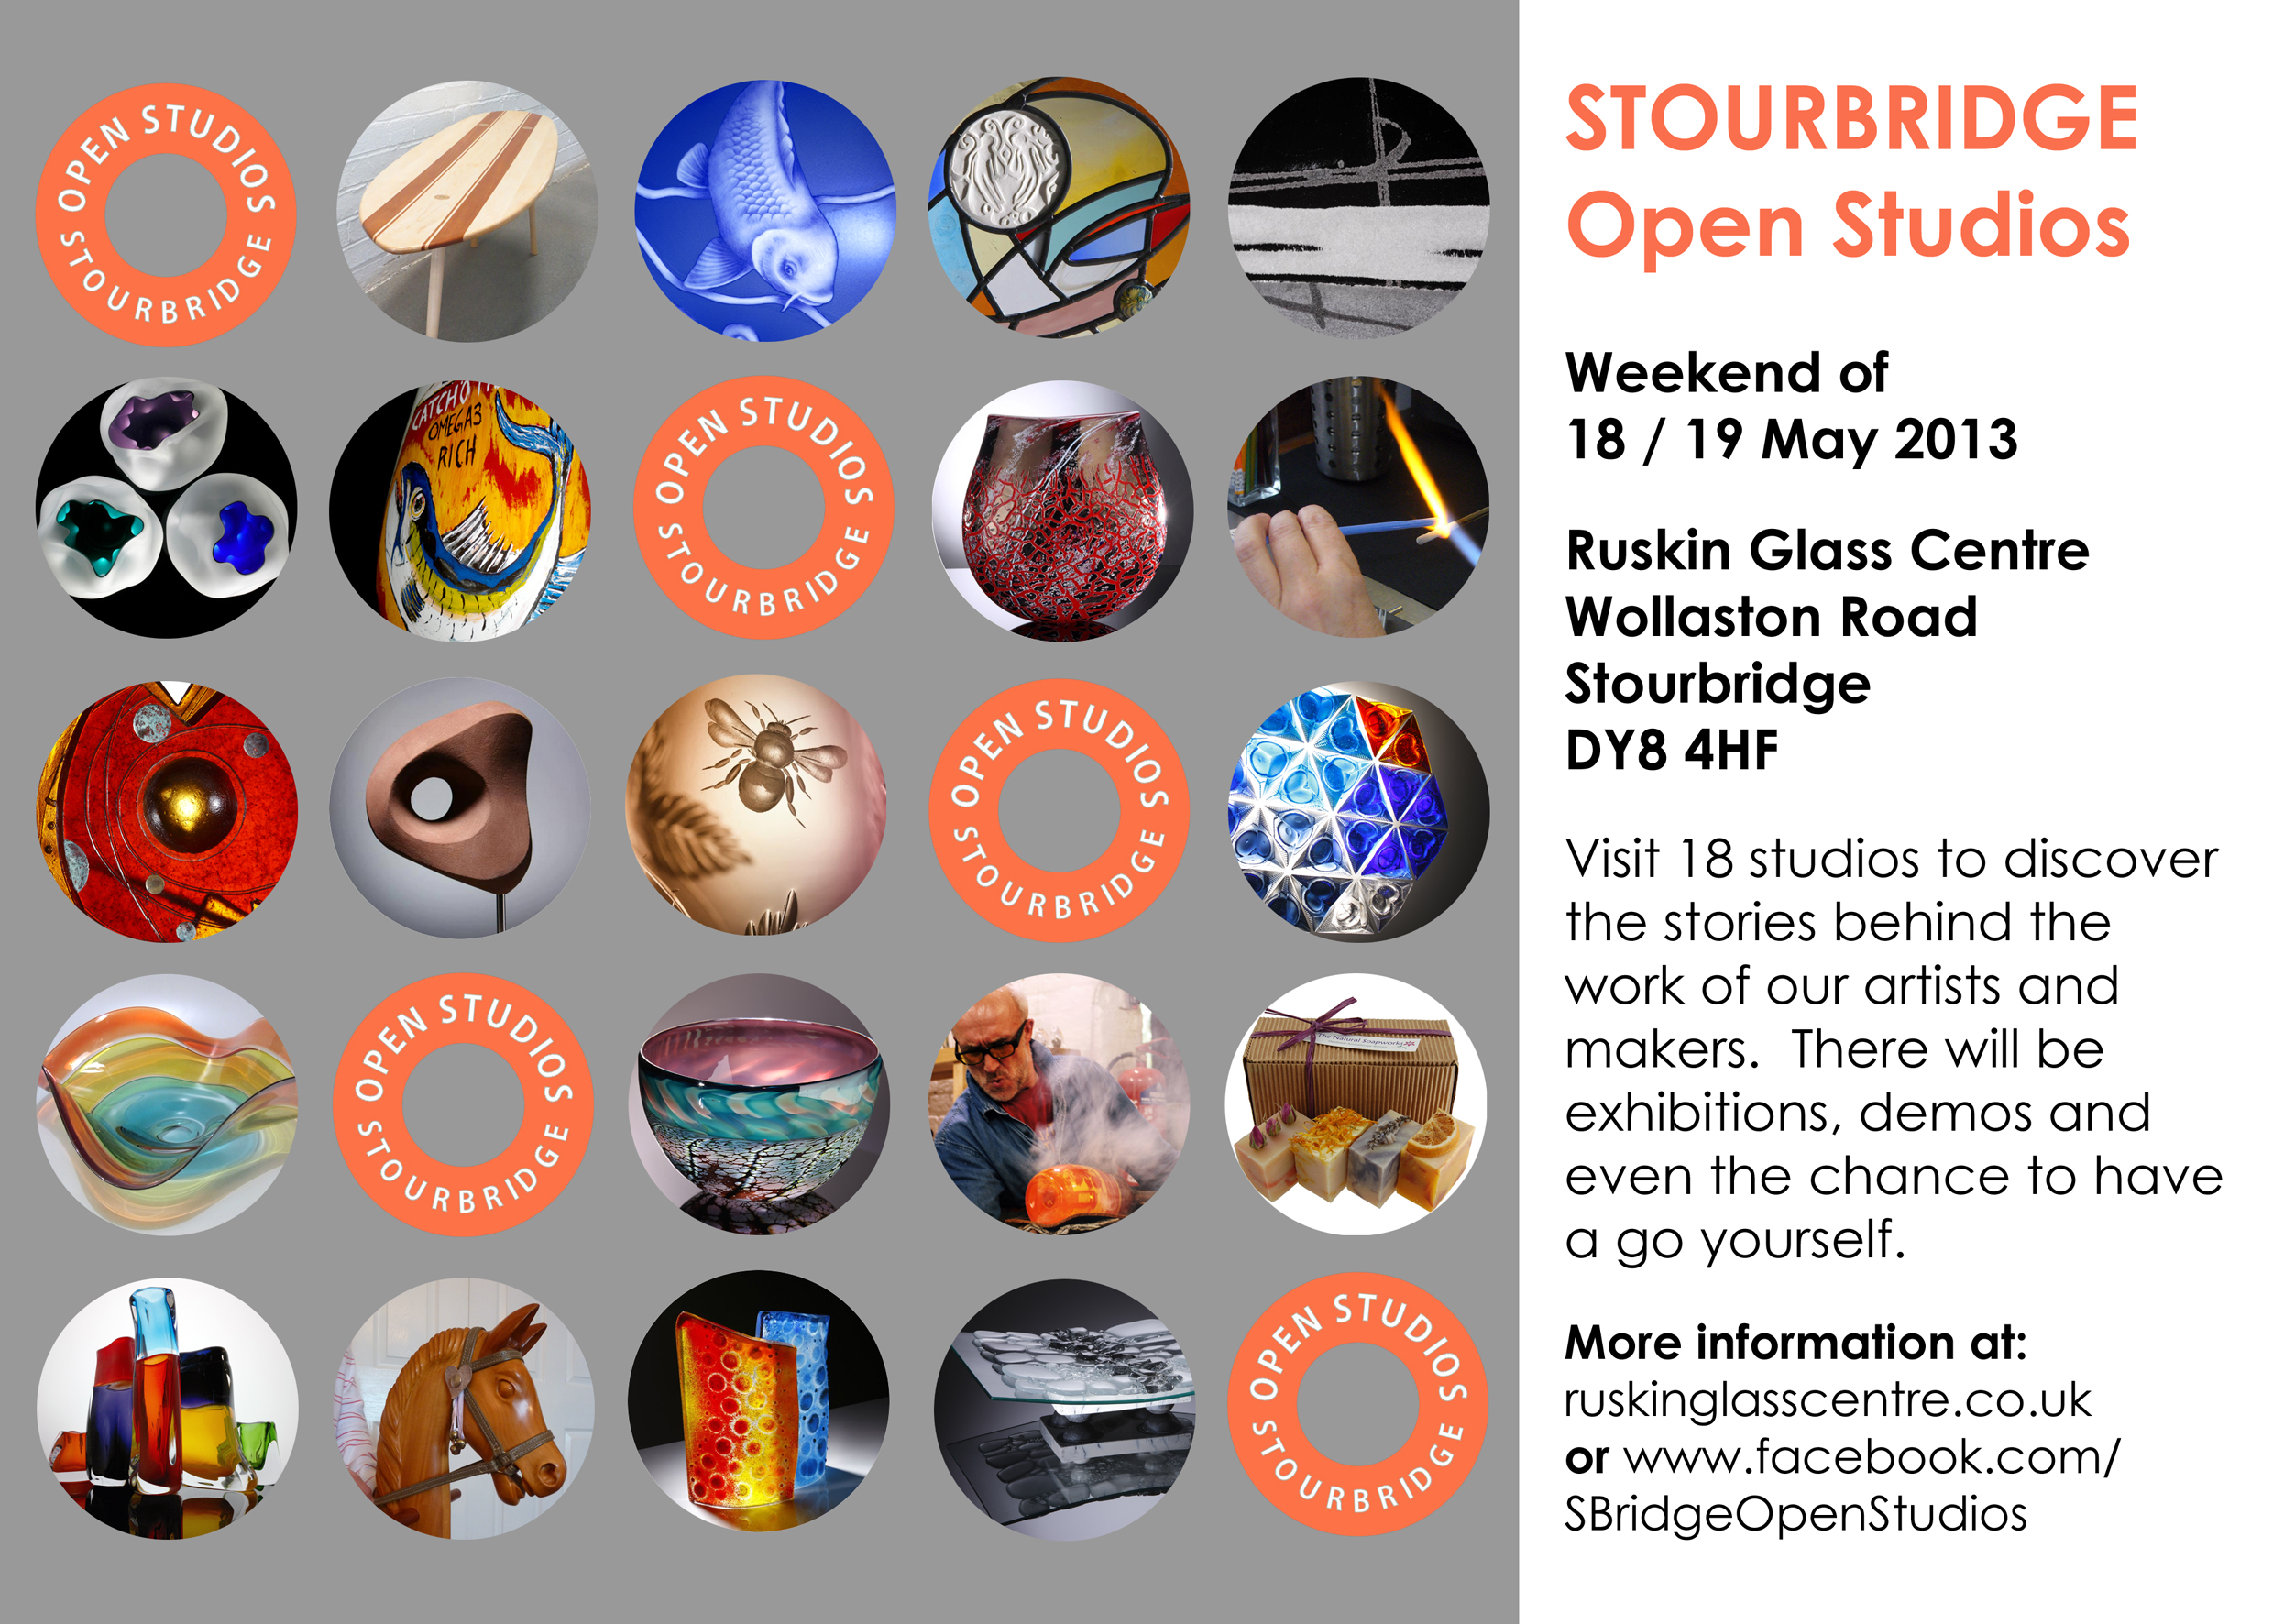 Stourbridge Open Studios